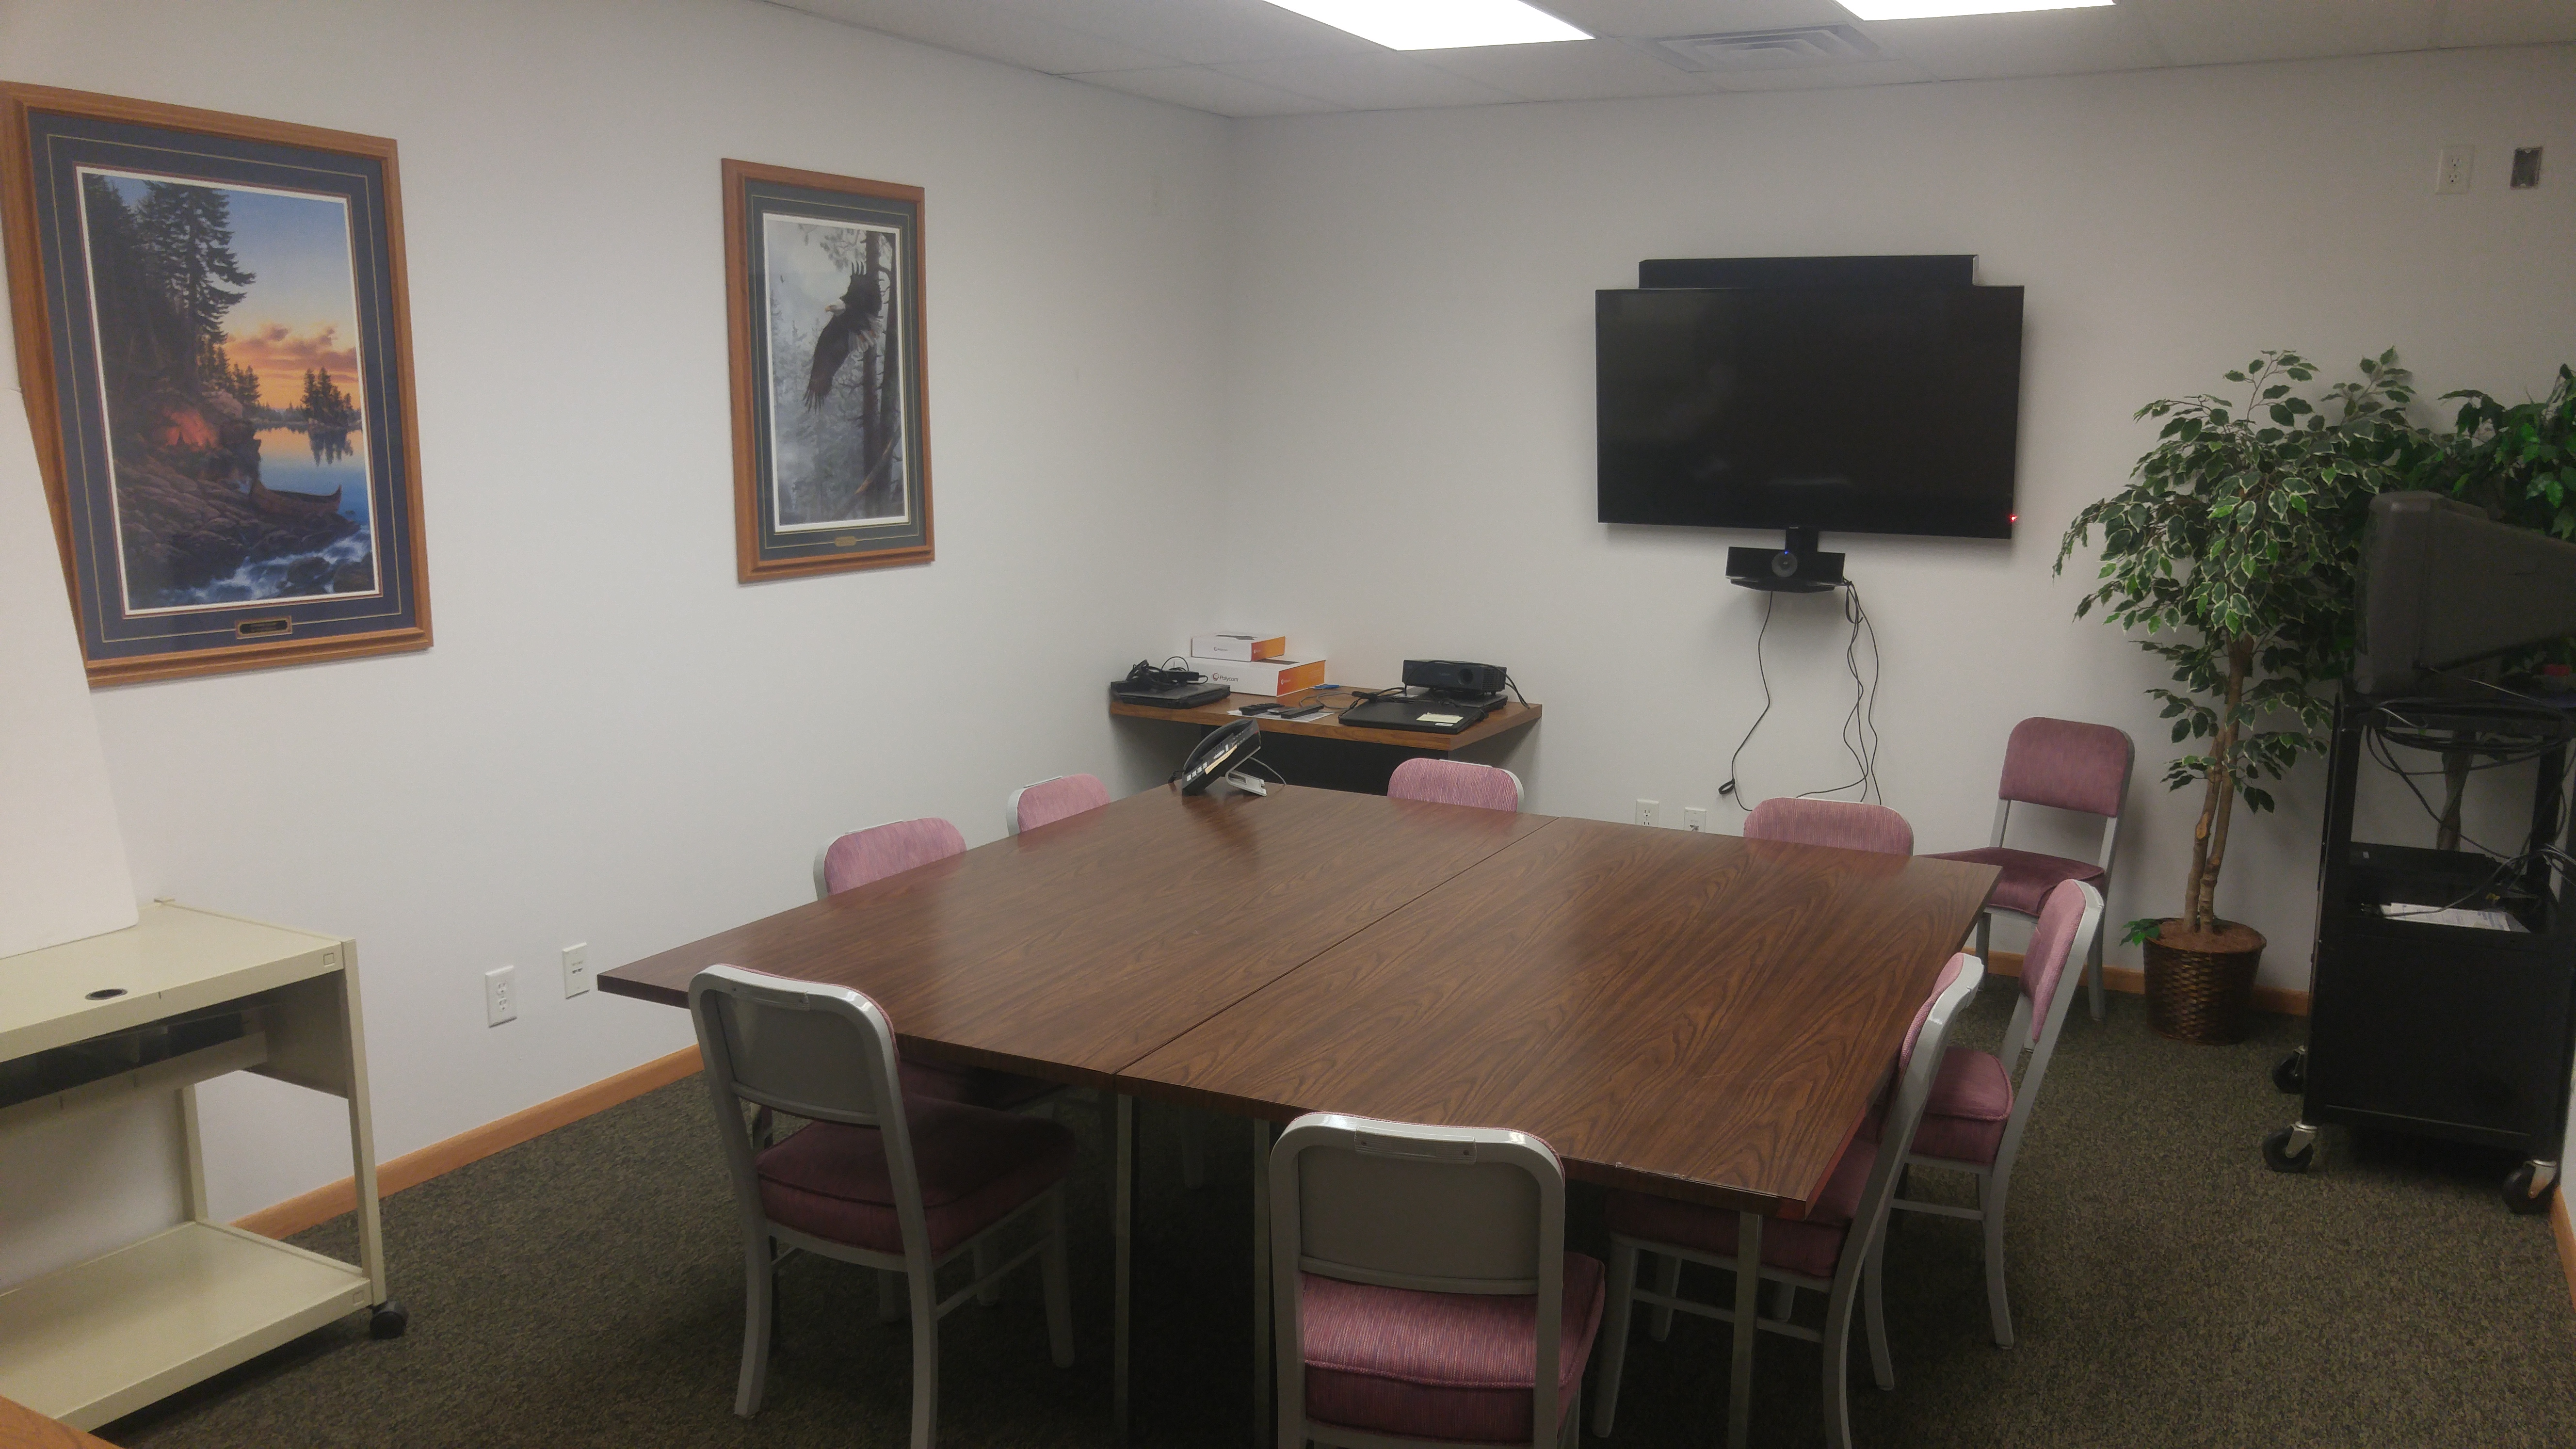 Meeting Room - Lower Level